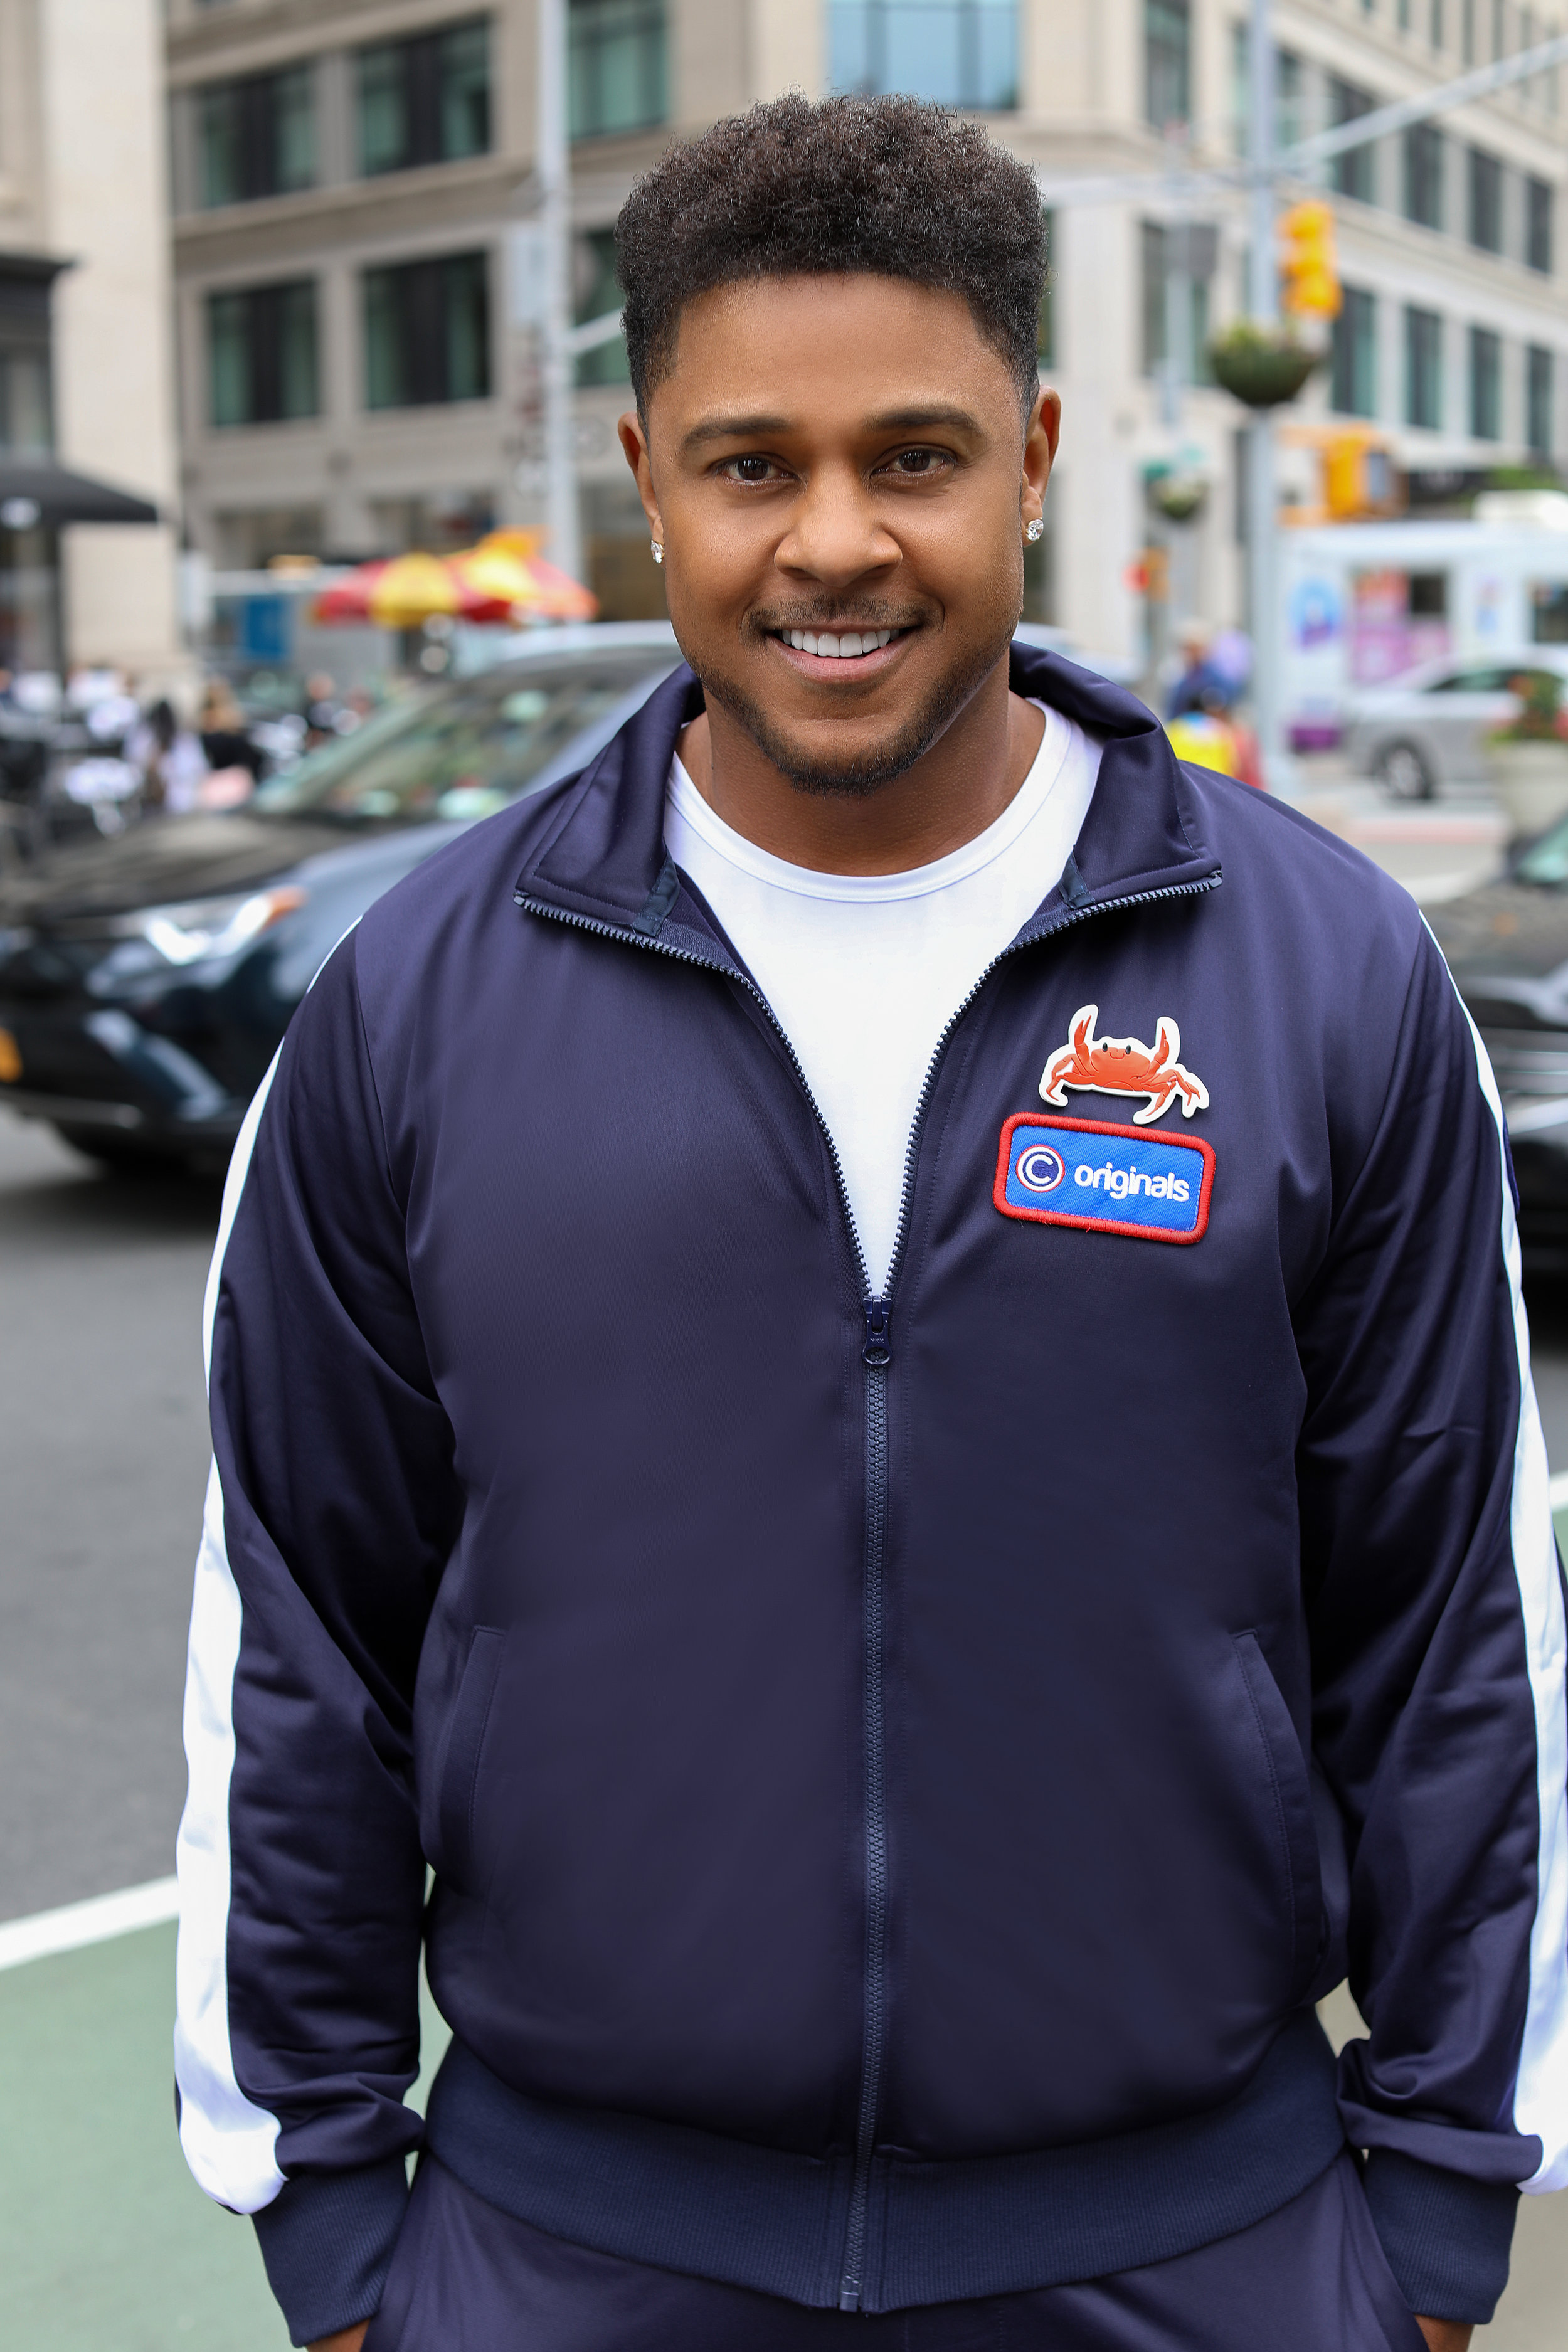 AM JUN HITTING THE STRETS WITH POOCH HALL-5.jpg